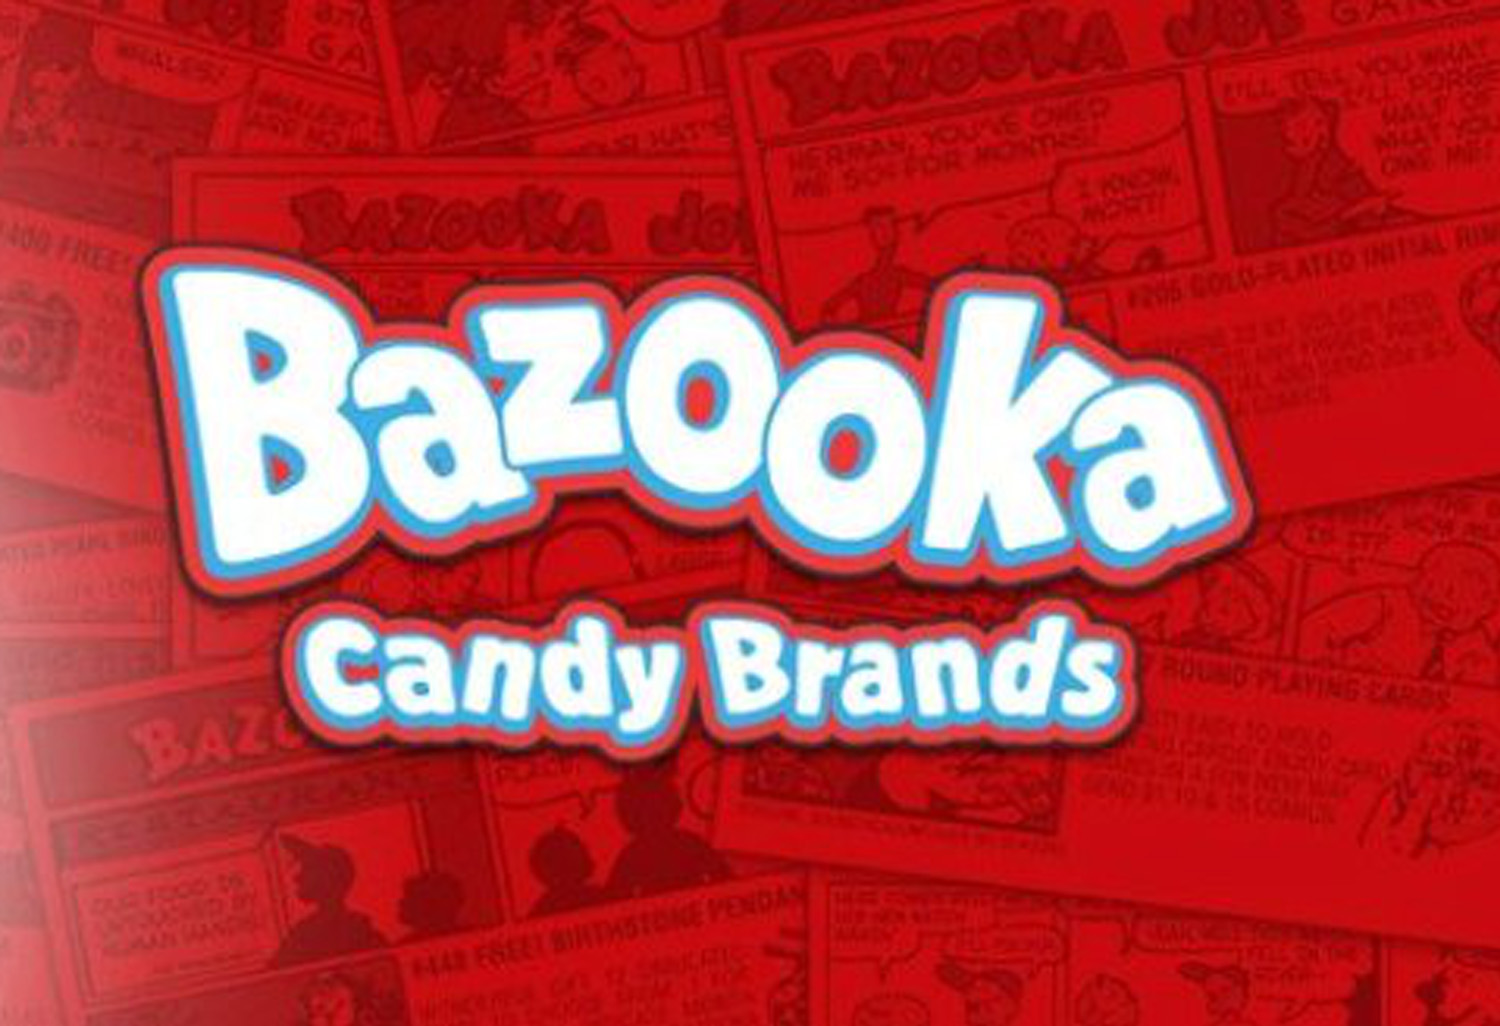 Bazooka Candy Brands - They're the specialty candies that kids love and parents hate: Baby Bottle Pop, Juicy Drop Pop, Push-Pop, and Ring Pop. Smiles and sweet, sweet stickiness everywhere. For each brand, we dug to the heart of what they can emotionally unlock for kids. For Baby Bottle Pop, it's permission to act like a baby again. Juicy Drop Pop became the gamification of confections. Push-Pop is problem-solving sweetness on-the-go. And Ring Pop came to represent edible peacocking.[Worked with Bazooka Candy Brands as Creative Director at DDB.]